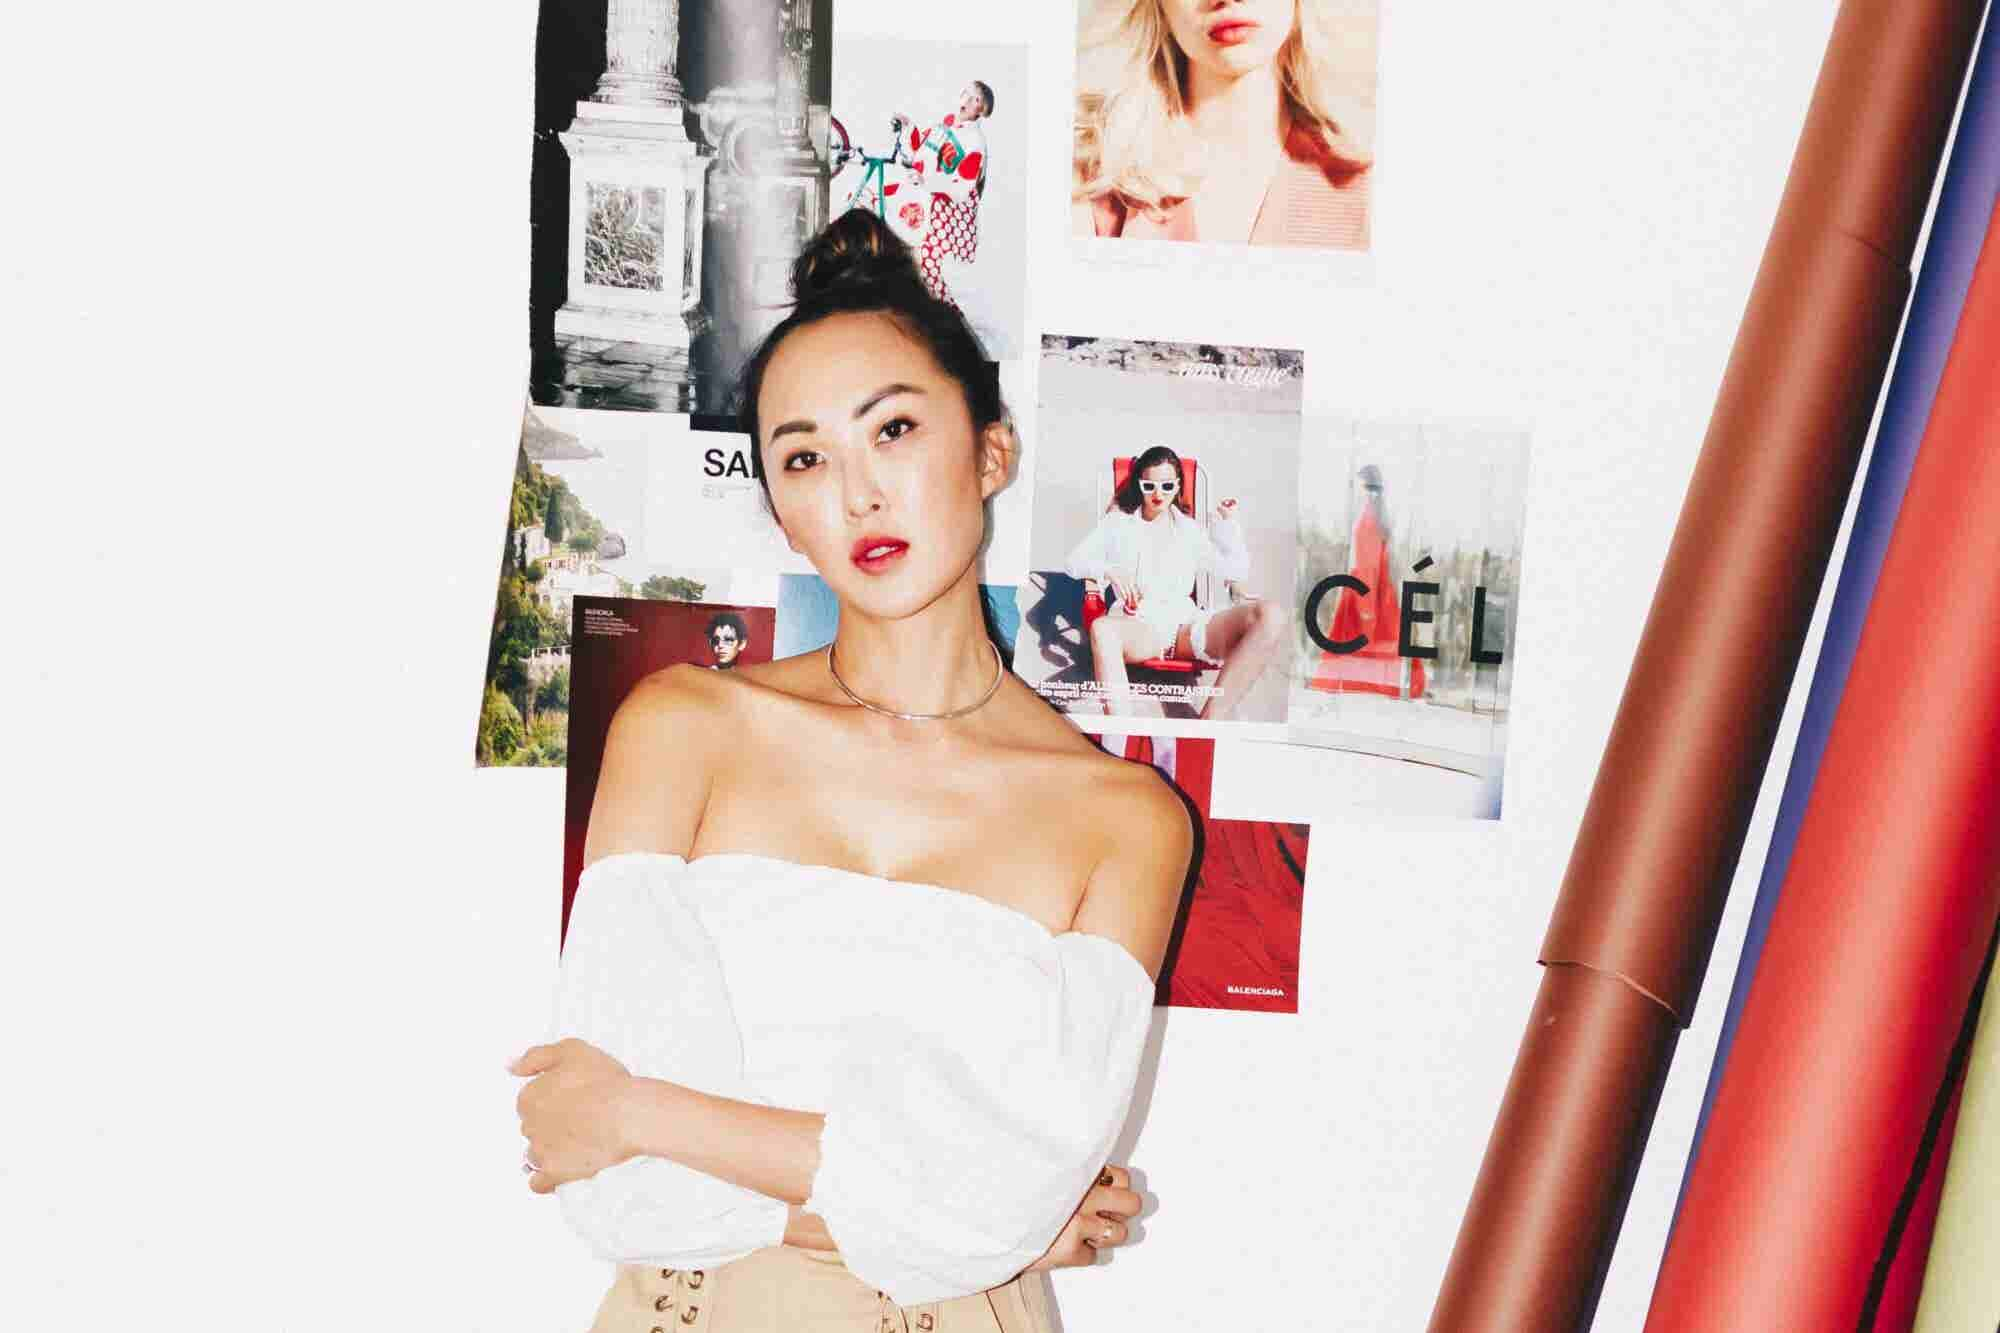 Chriselle Lim Started Out as a Wardrobe Stylist. Now She Has More Than 3 Million Social Media Followers.